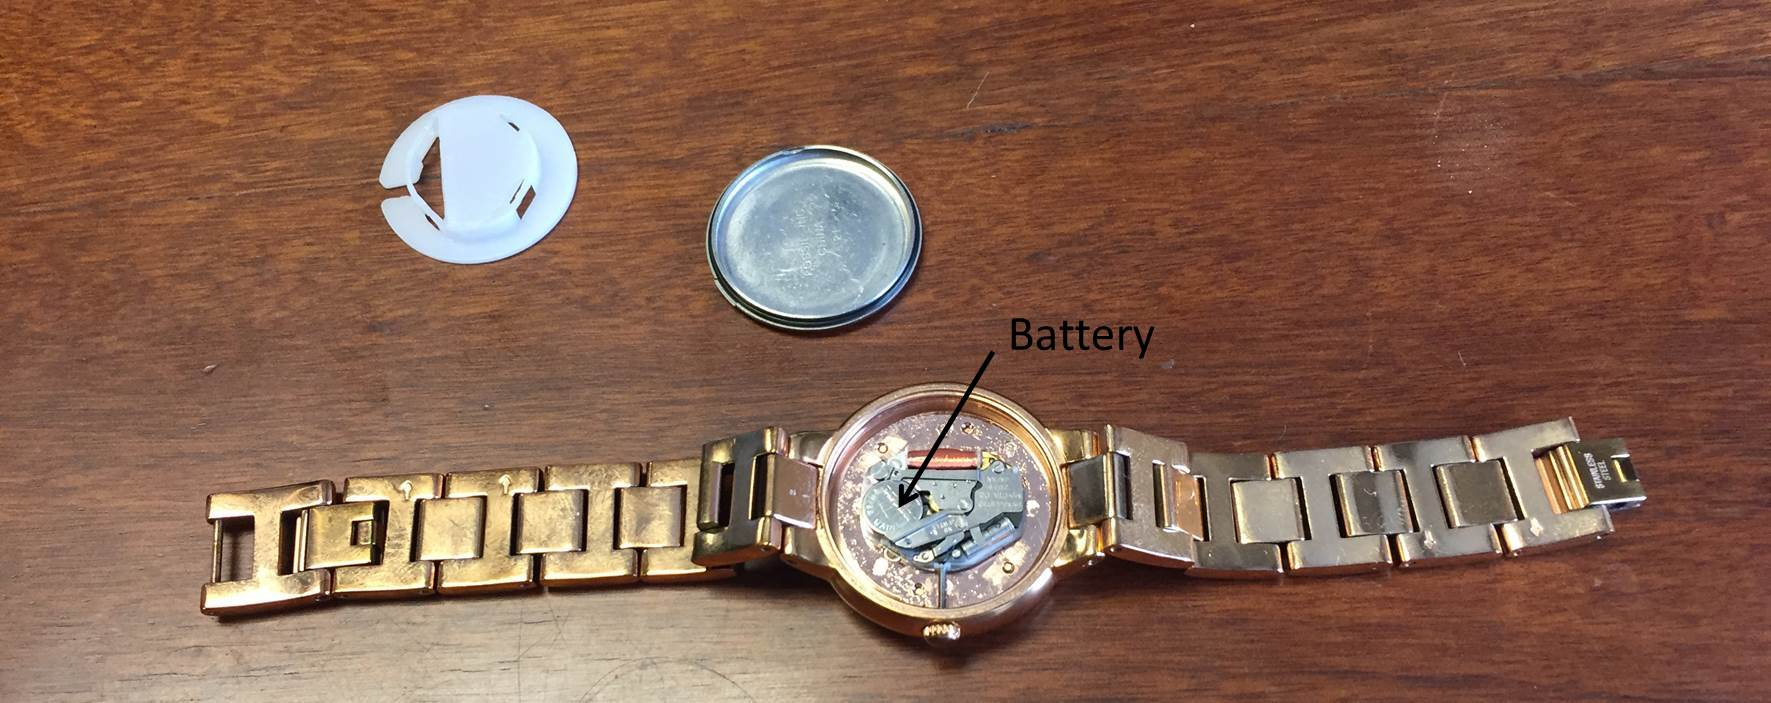 watch-plastic-cover-and-back-removed-battery-indicated